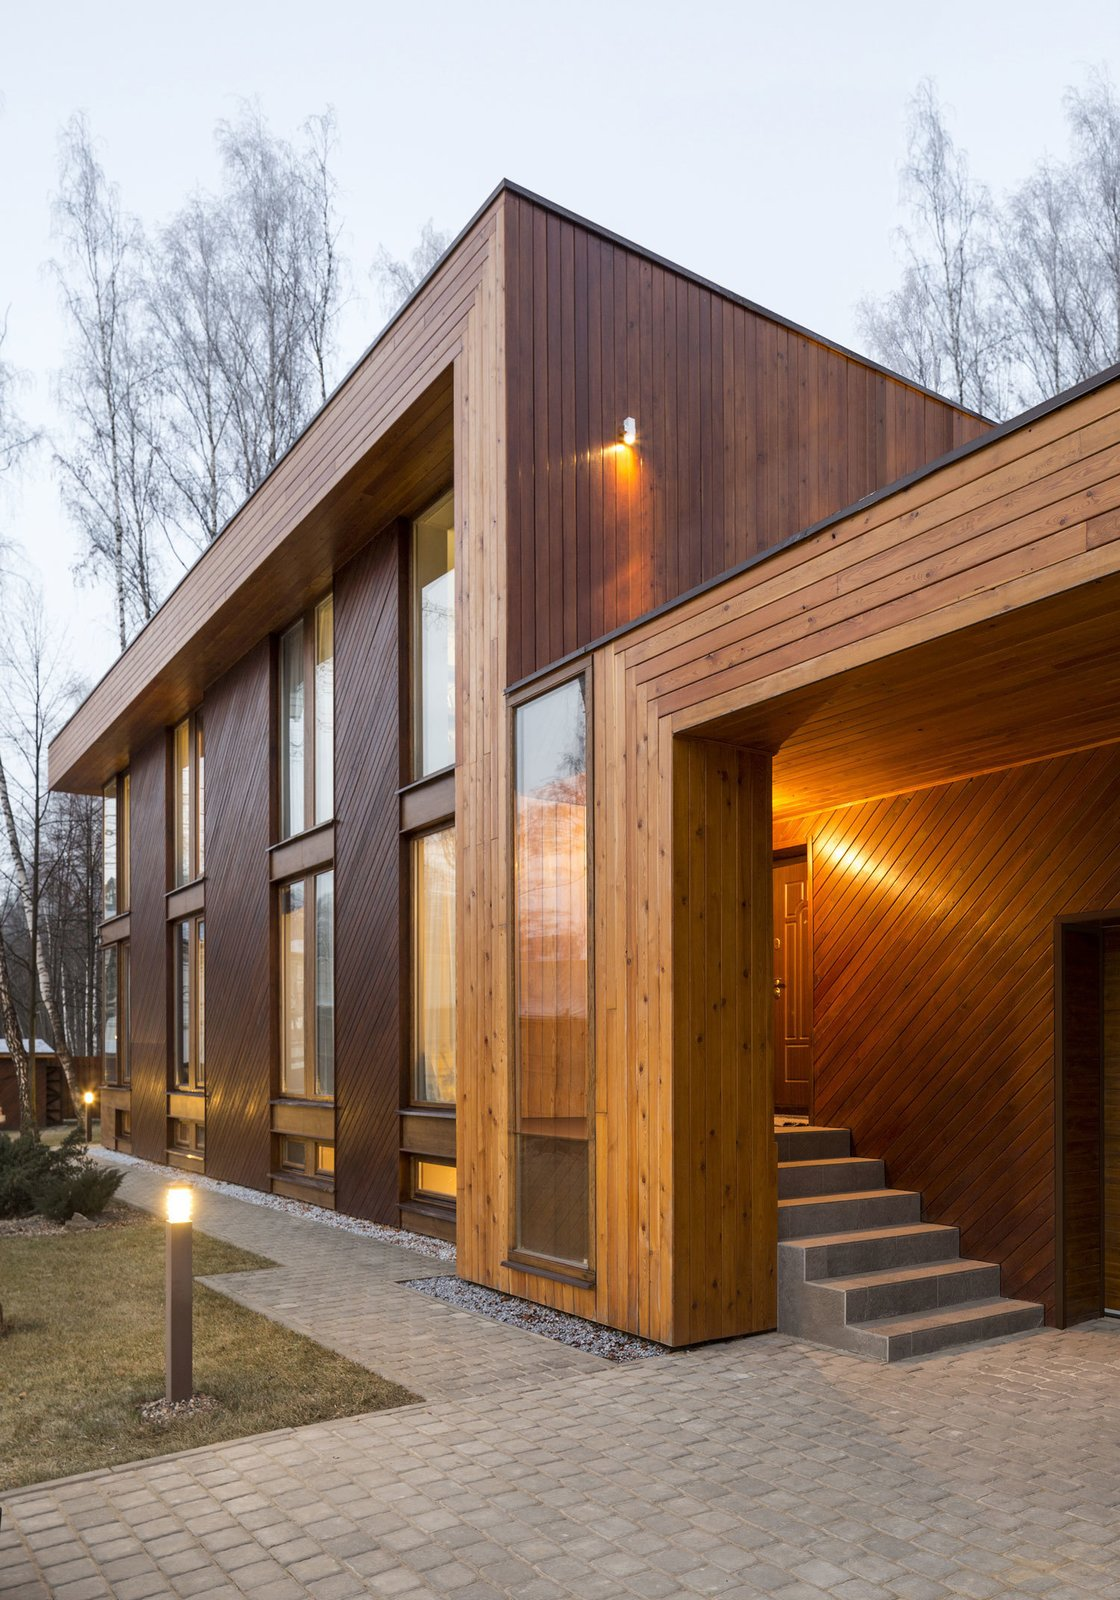 "Larch timber planks make up the reddish-gray facade and also adorn the interior walls and floor. Zhidkov says the wood ""allowed the house to be an organic insertion into the landscape.""  House in Moscow by Laura C. Mallonee"